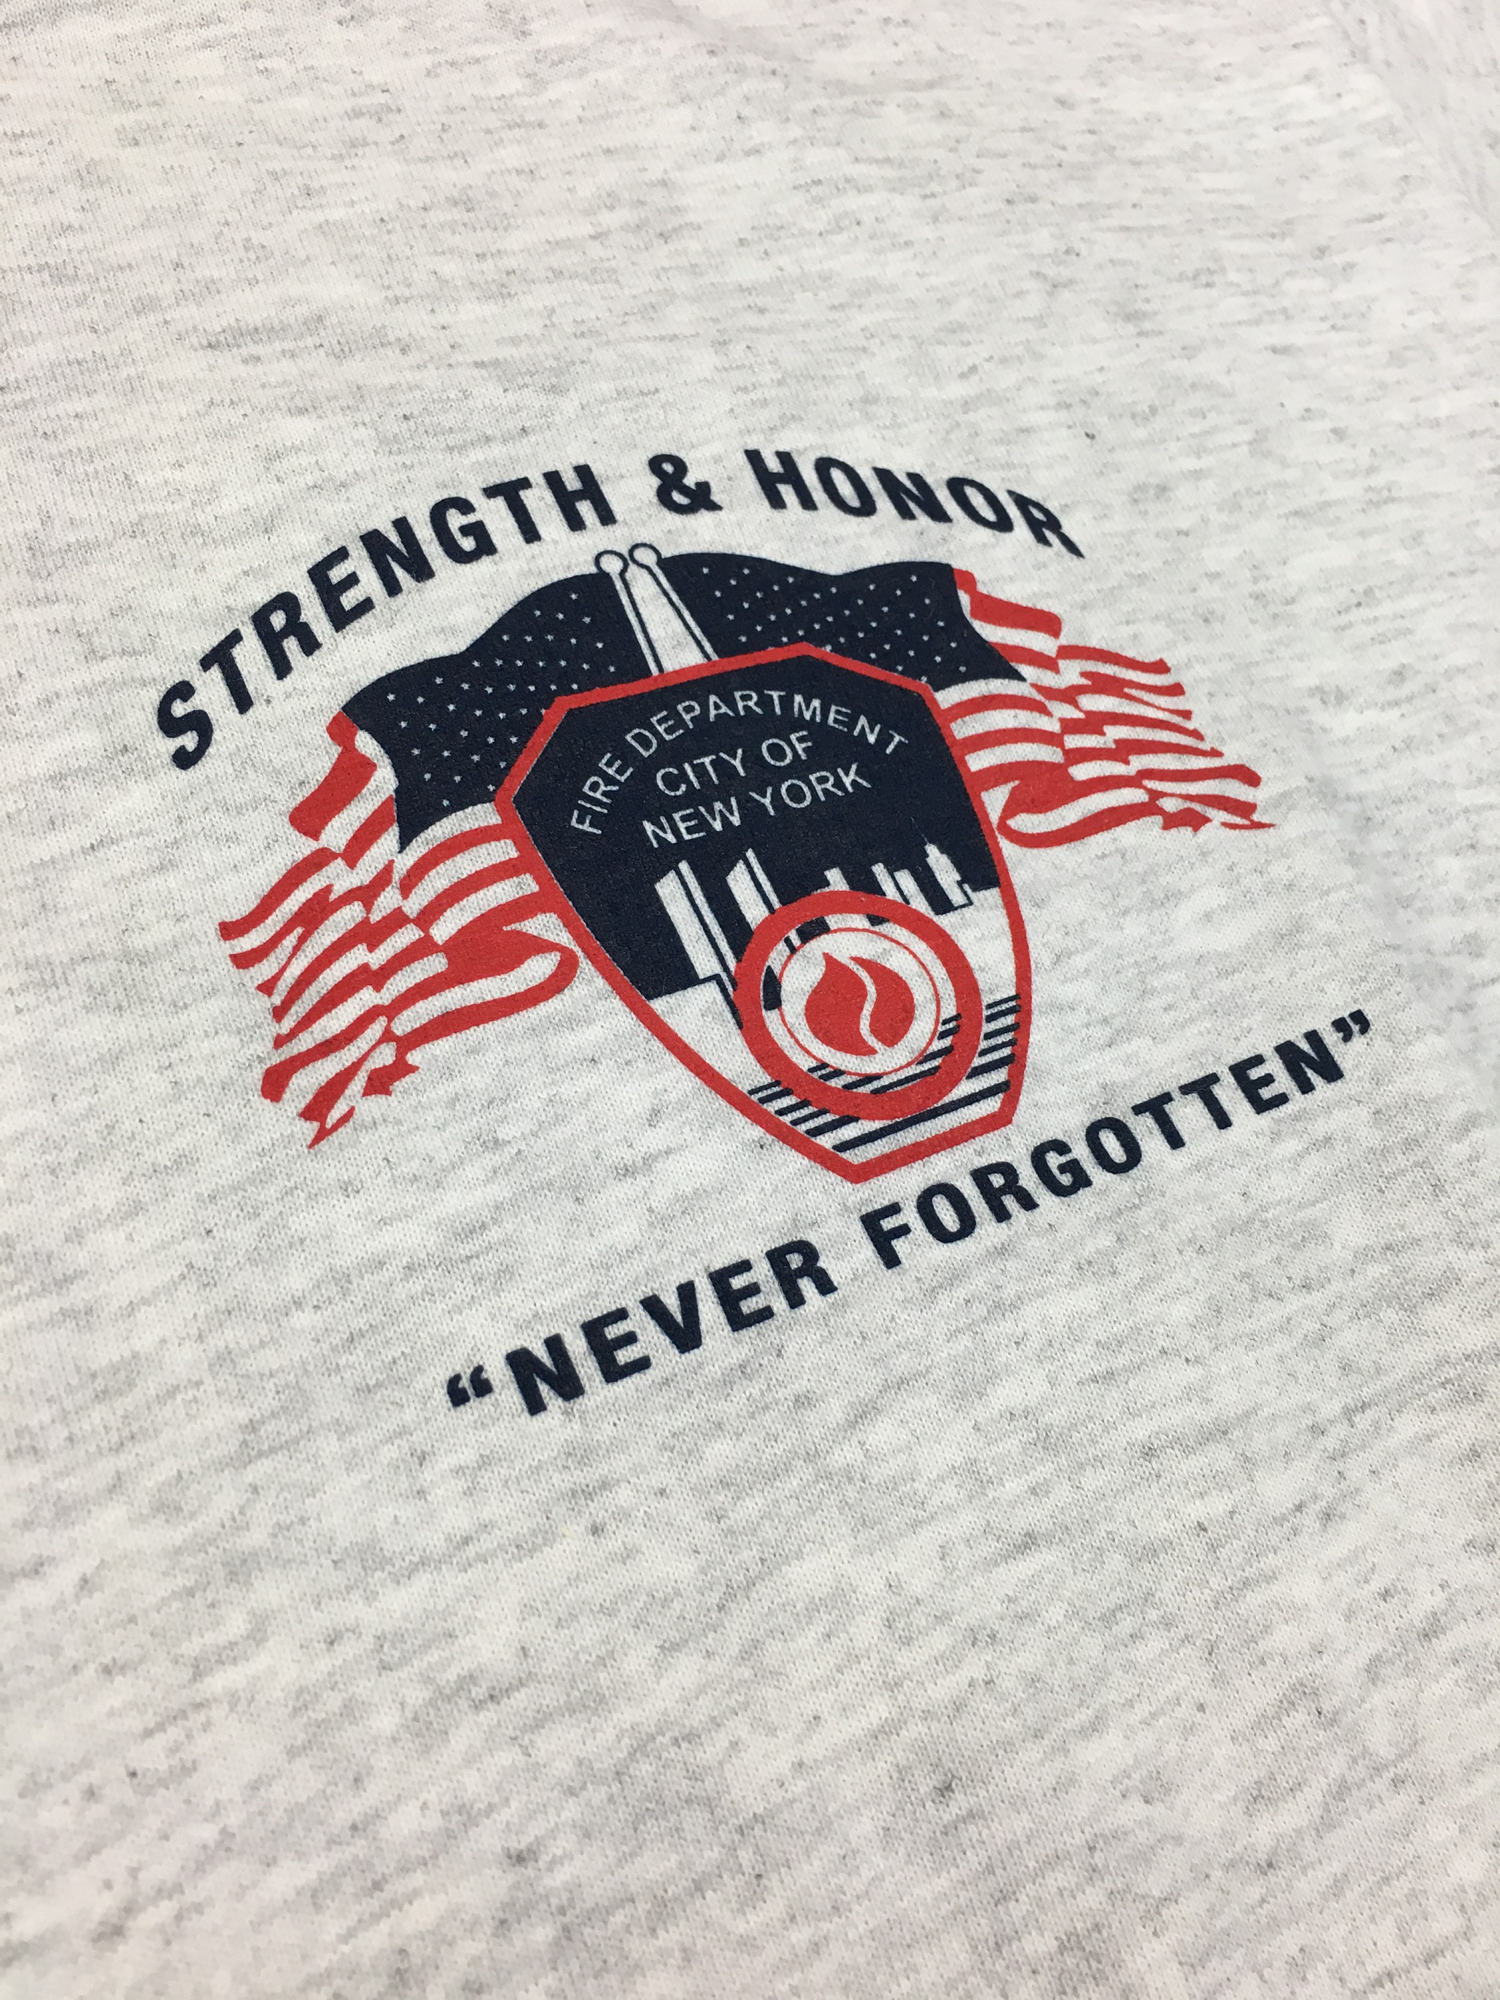 fdny-strength-and-honor-6-30-17.png